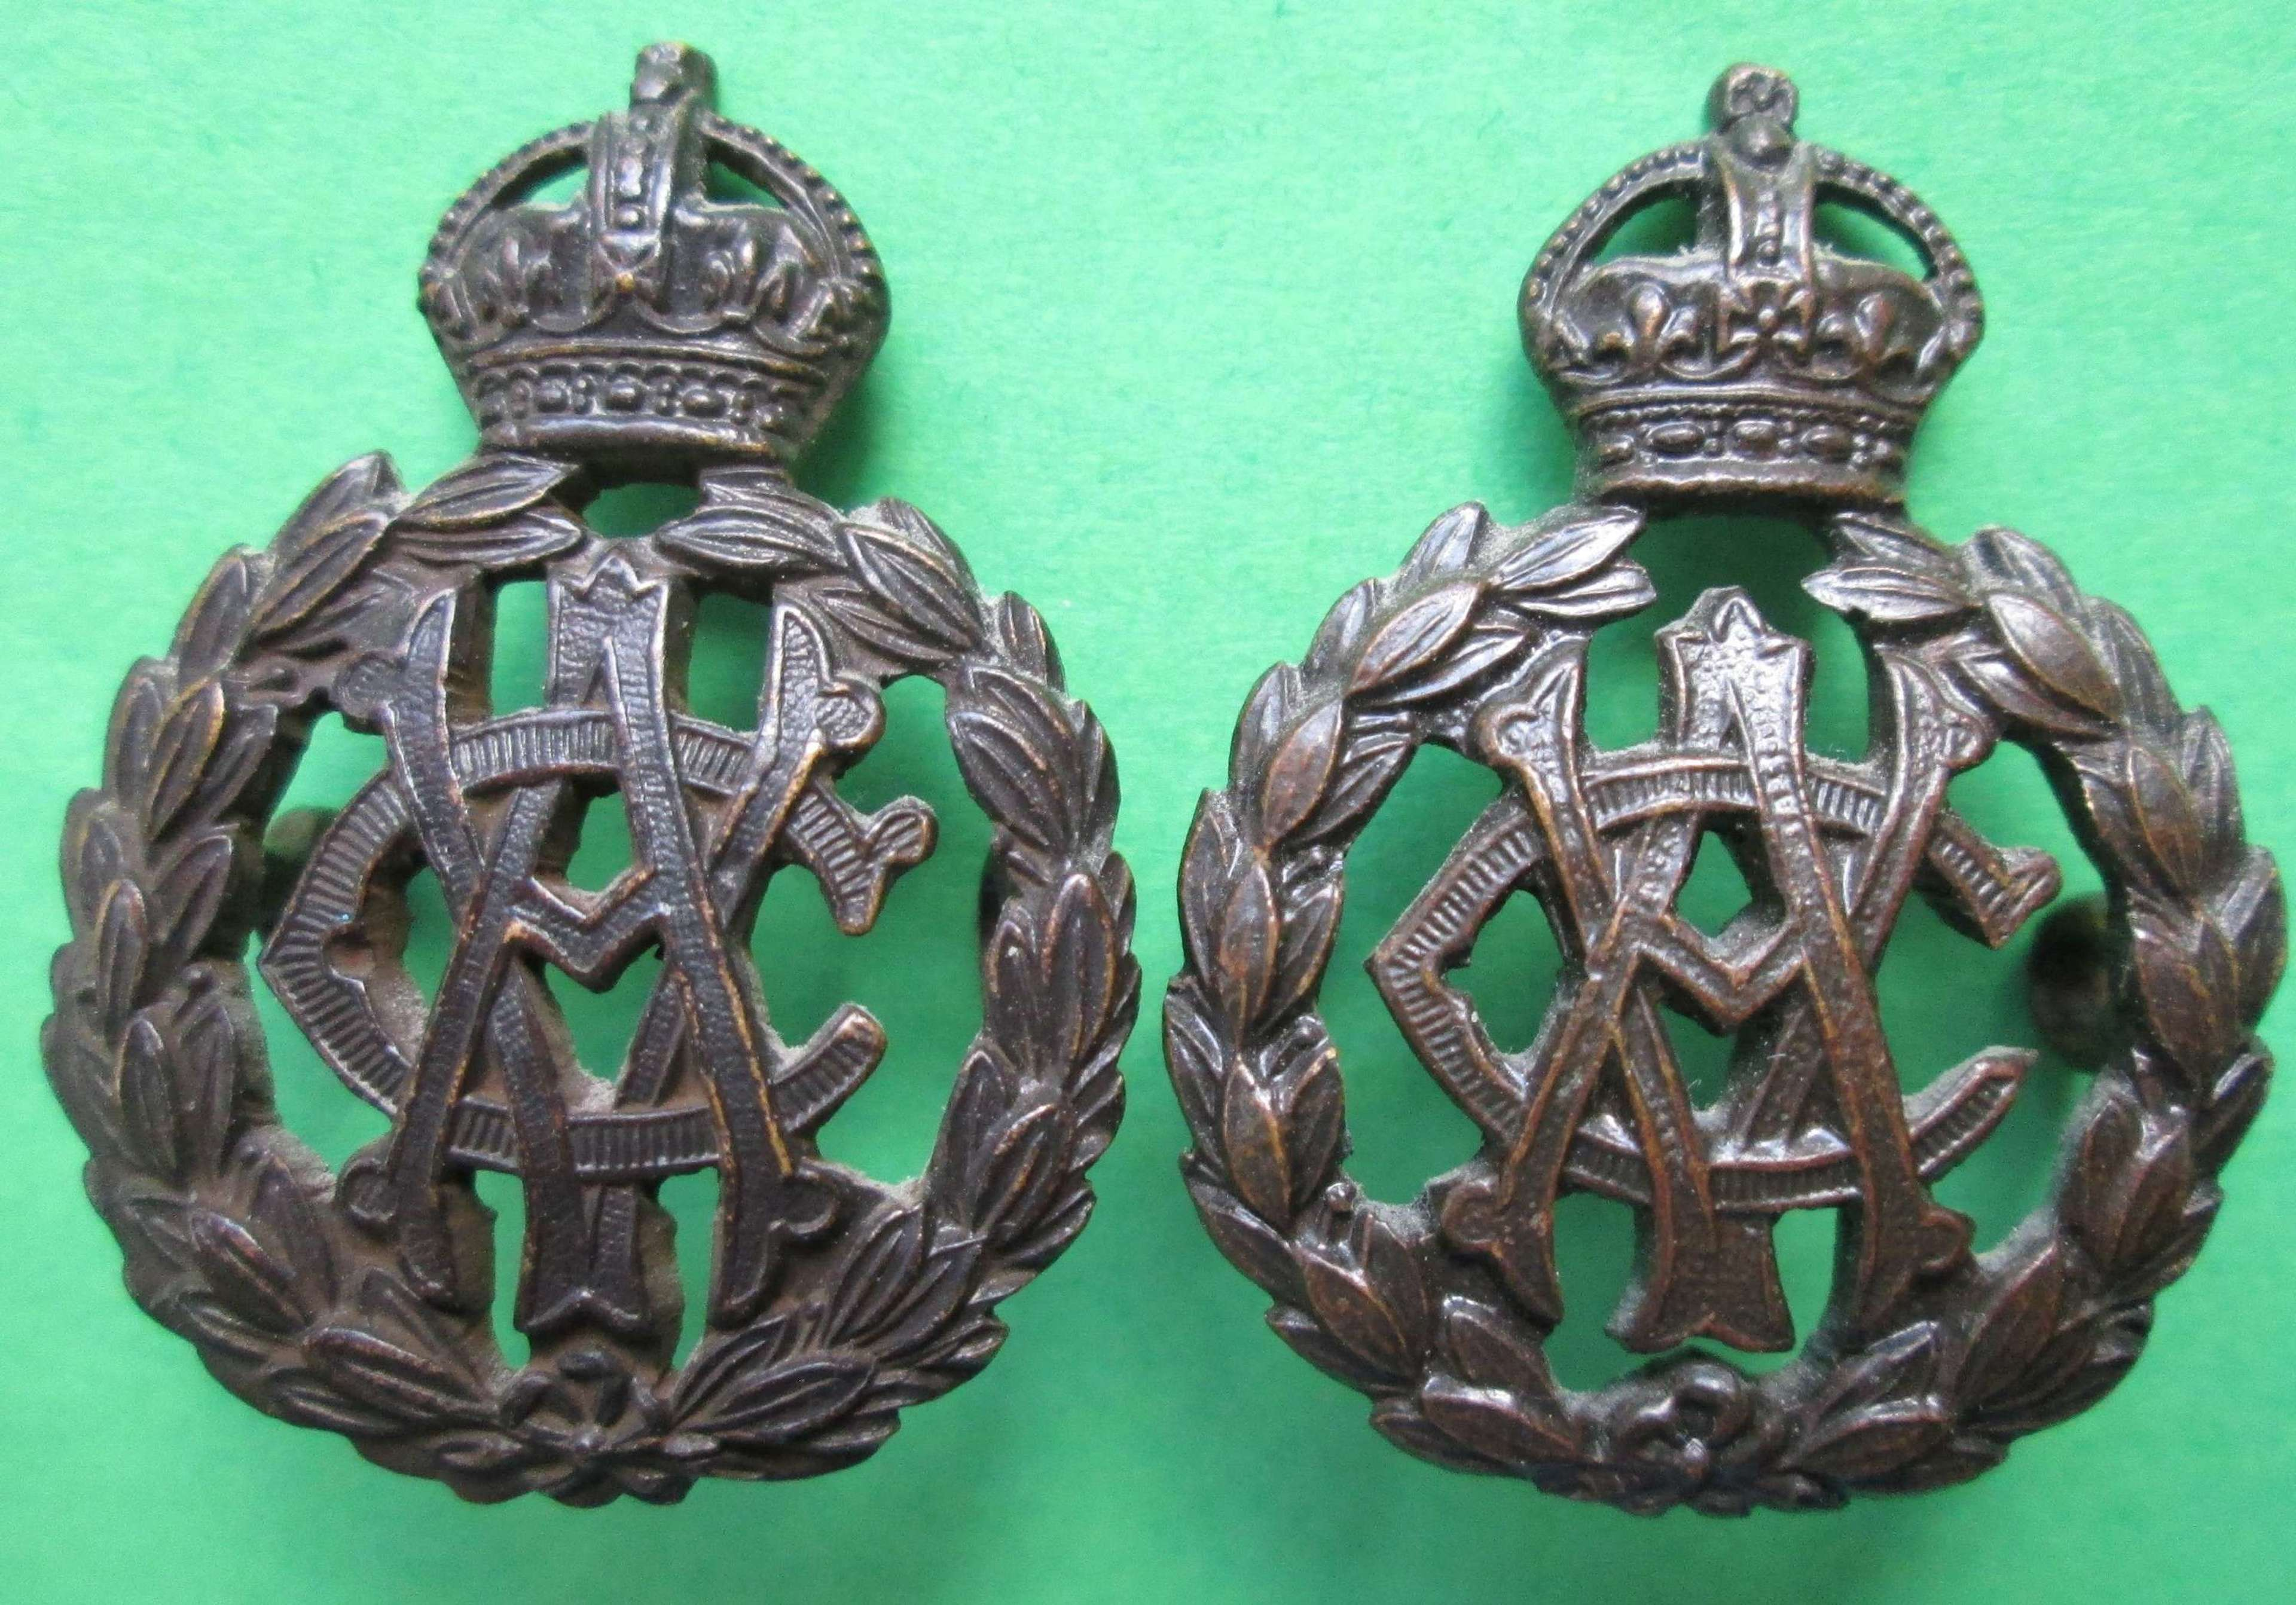 A PAIR OF OFFICER'S BRONZE ARMY VETERINARY CORPS COLLAR DOGS